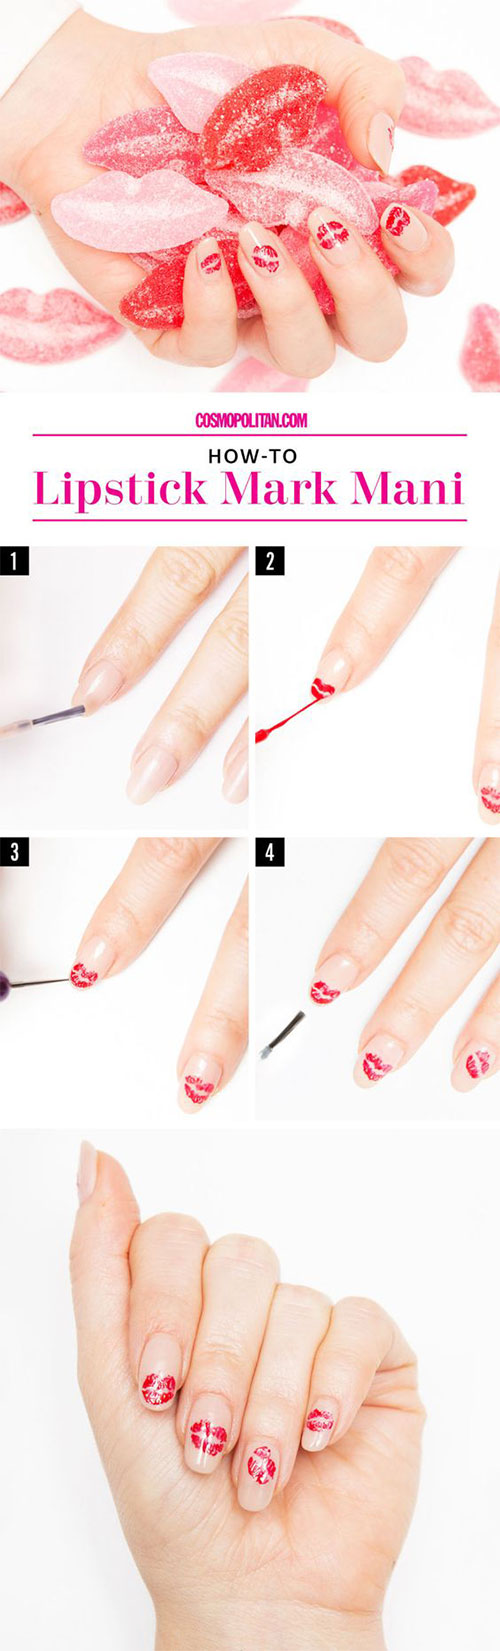 15-Easy-Simple-Valentines-Day-Nails-Tutorials-For-Beginners-2017-11